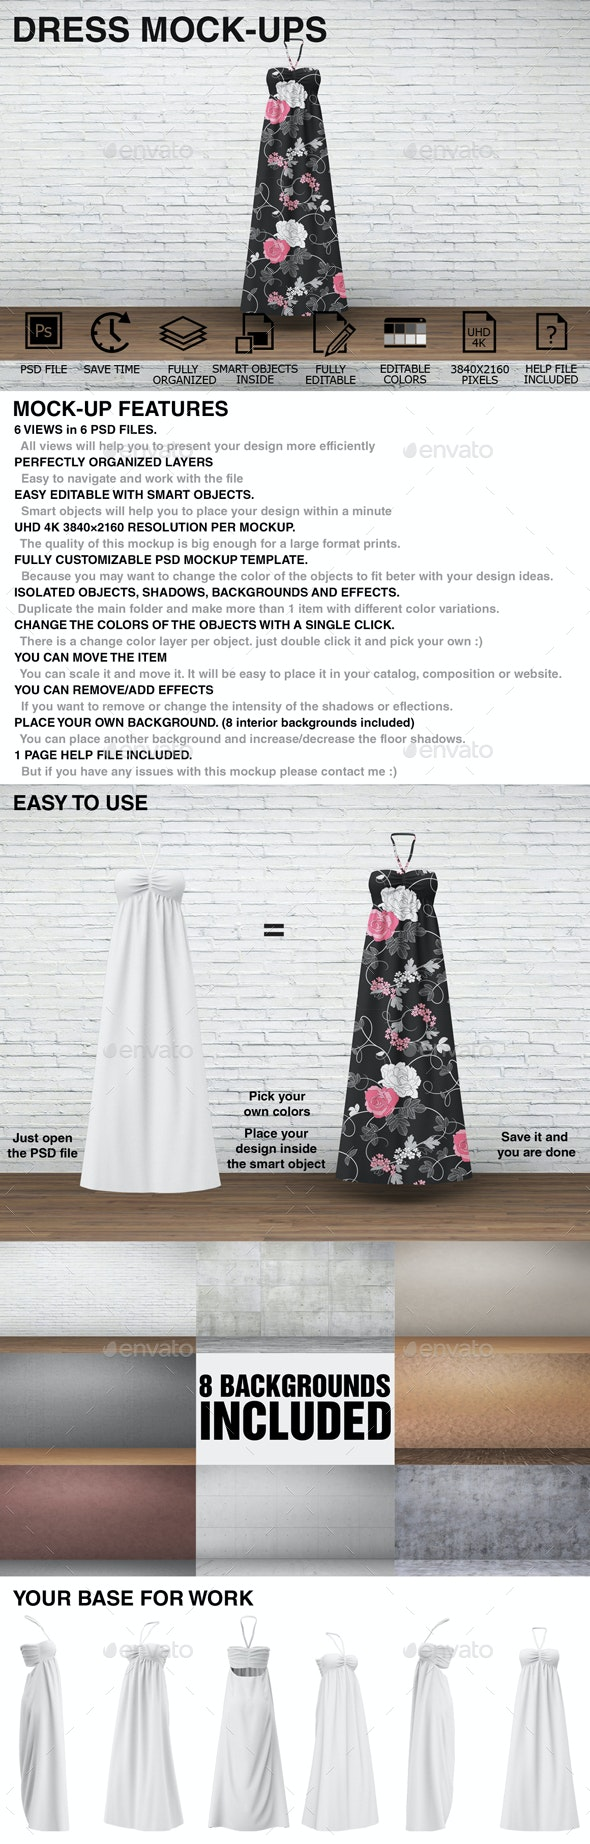 Dress Mockups - Clothing Mockups - Miscellaneous Apparel